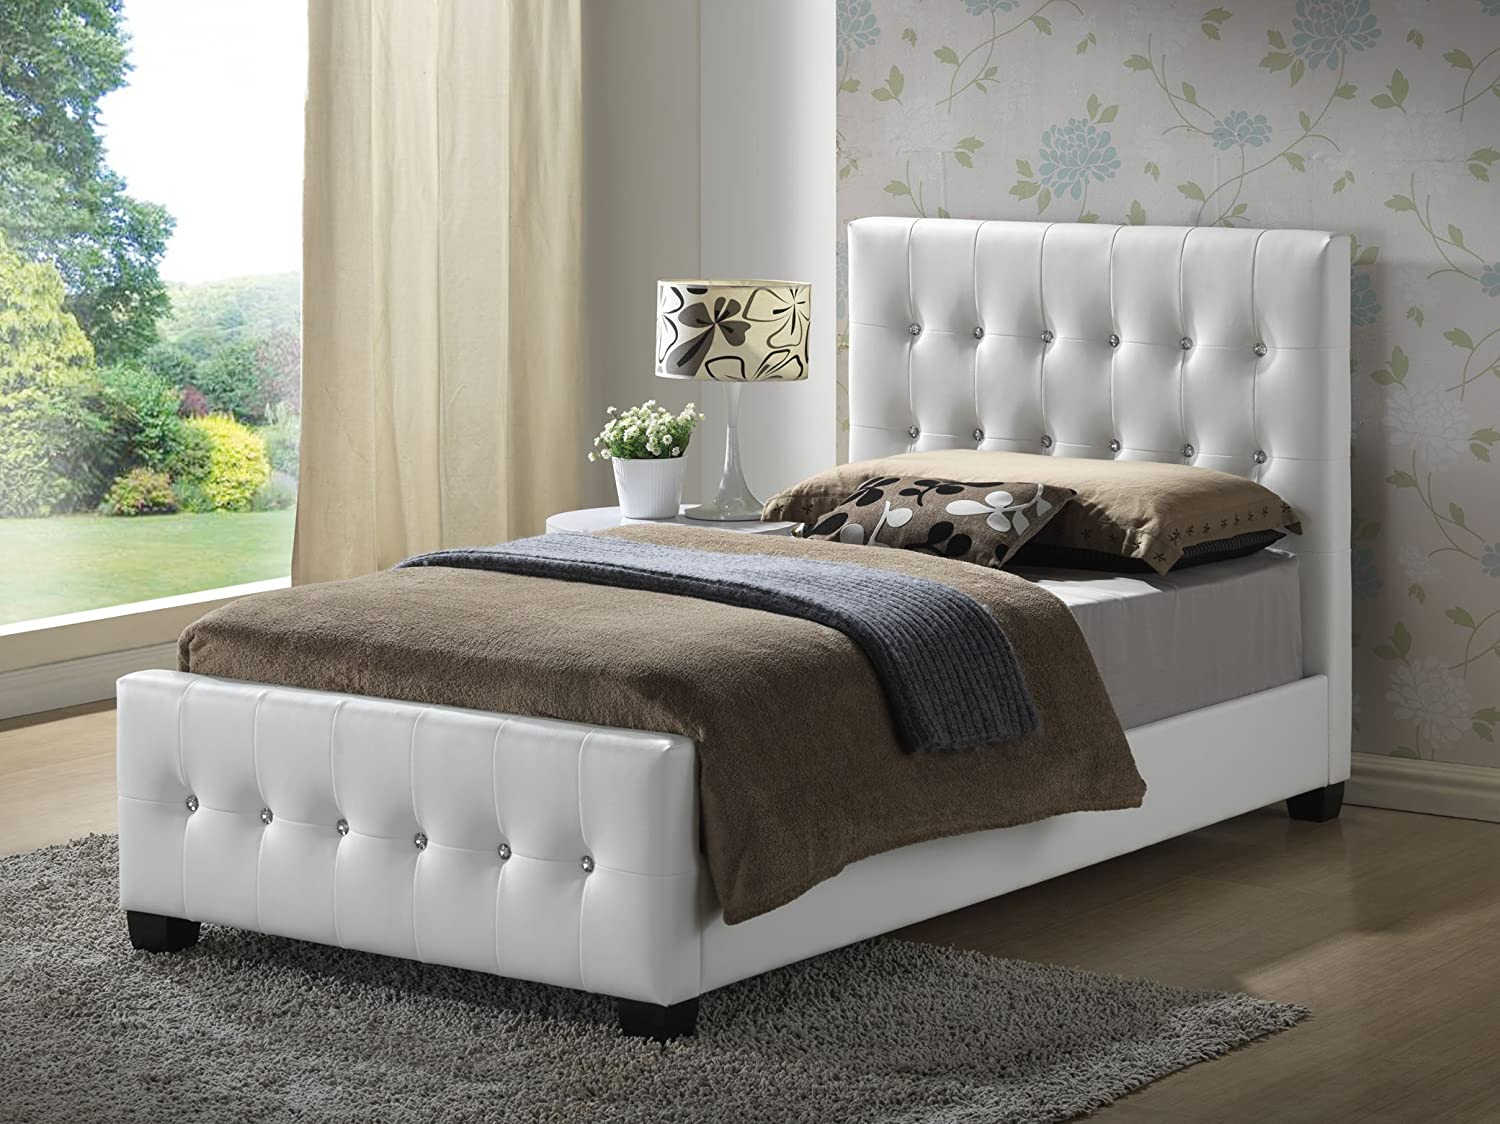 Amazon.com: White - Twin Size - Modern Headboard Tufted Design ...